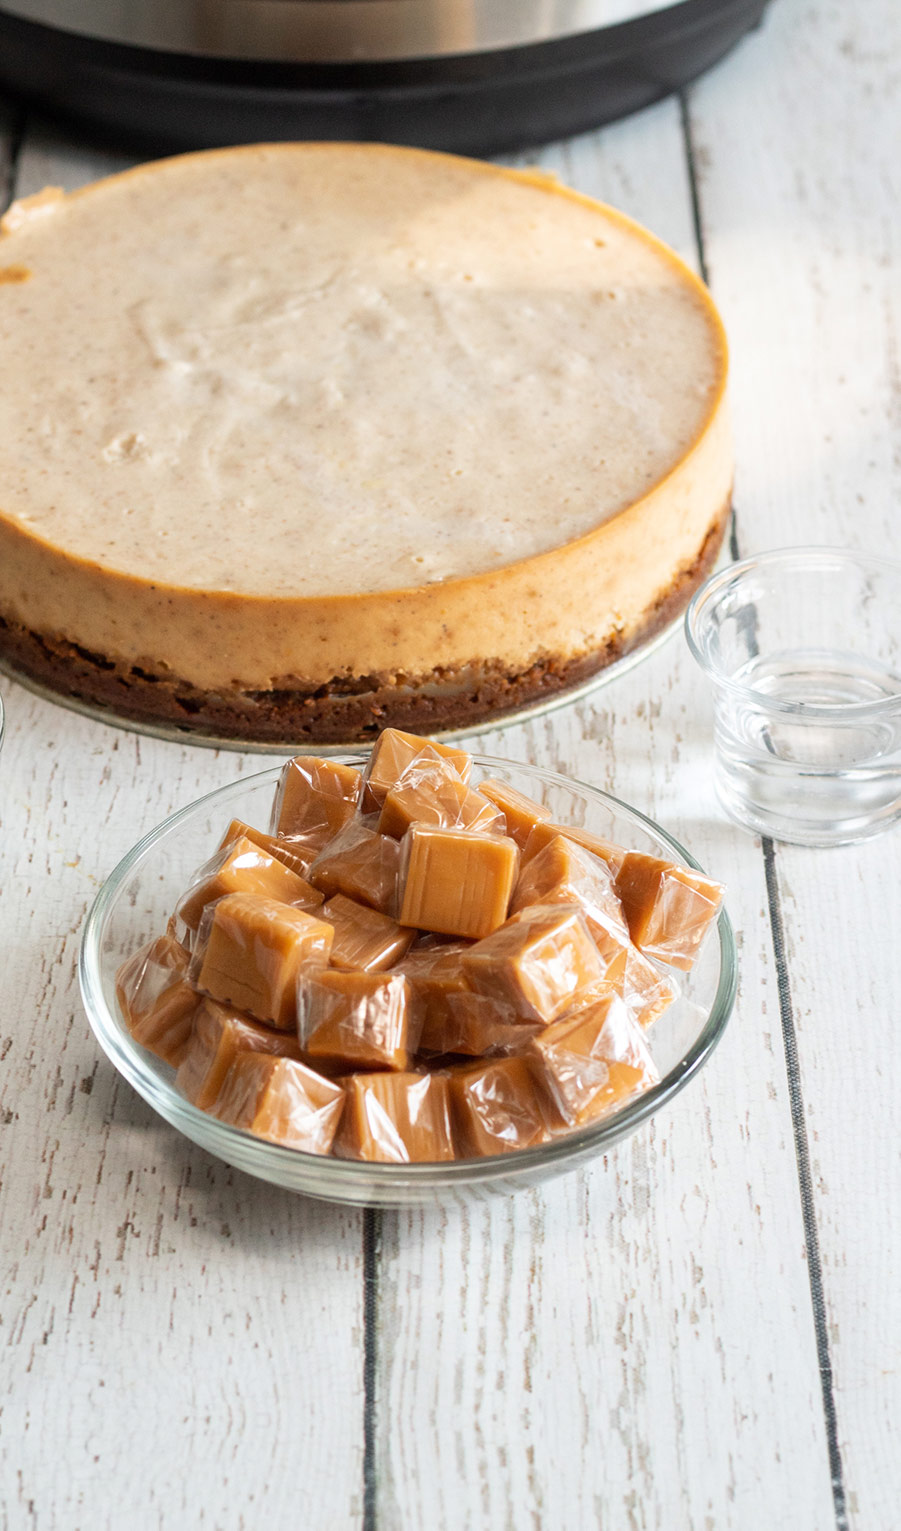 eggnog cheesecake in the background and a bowl of caramel candies up front.